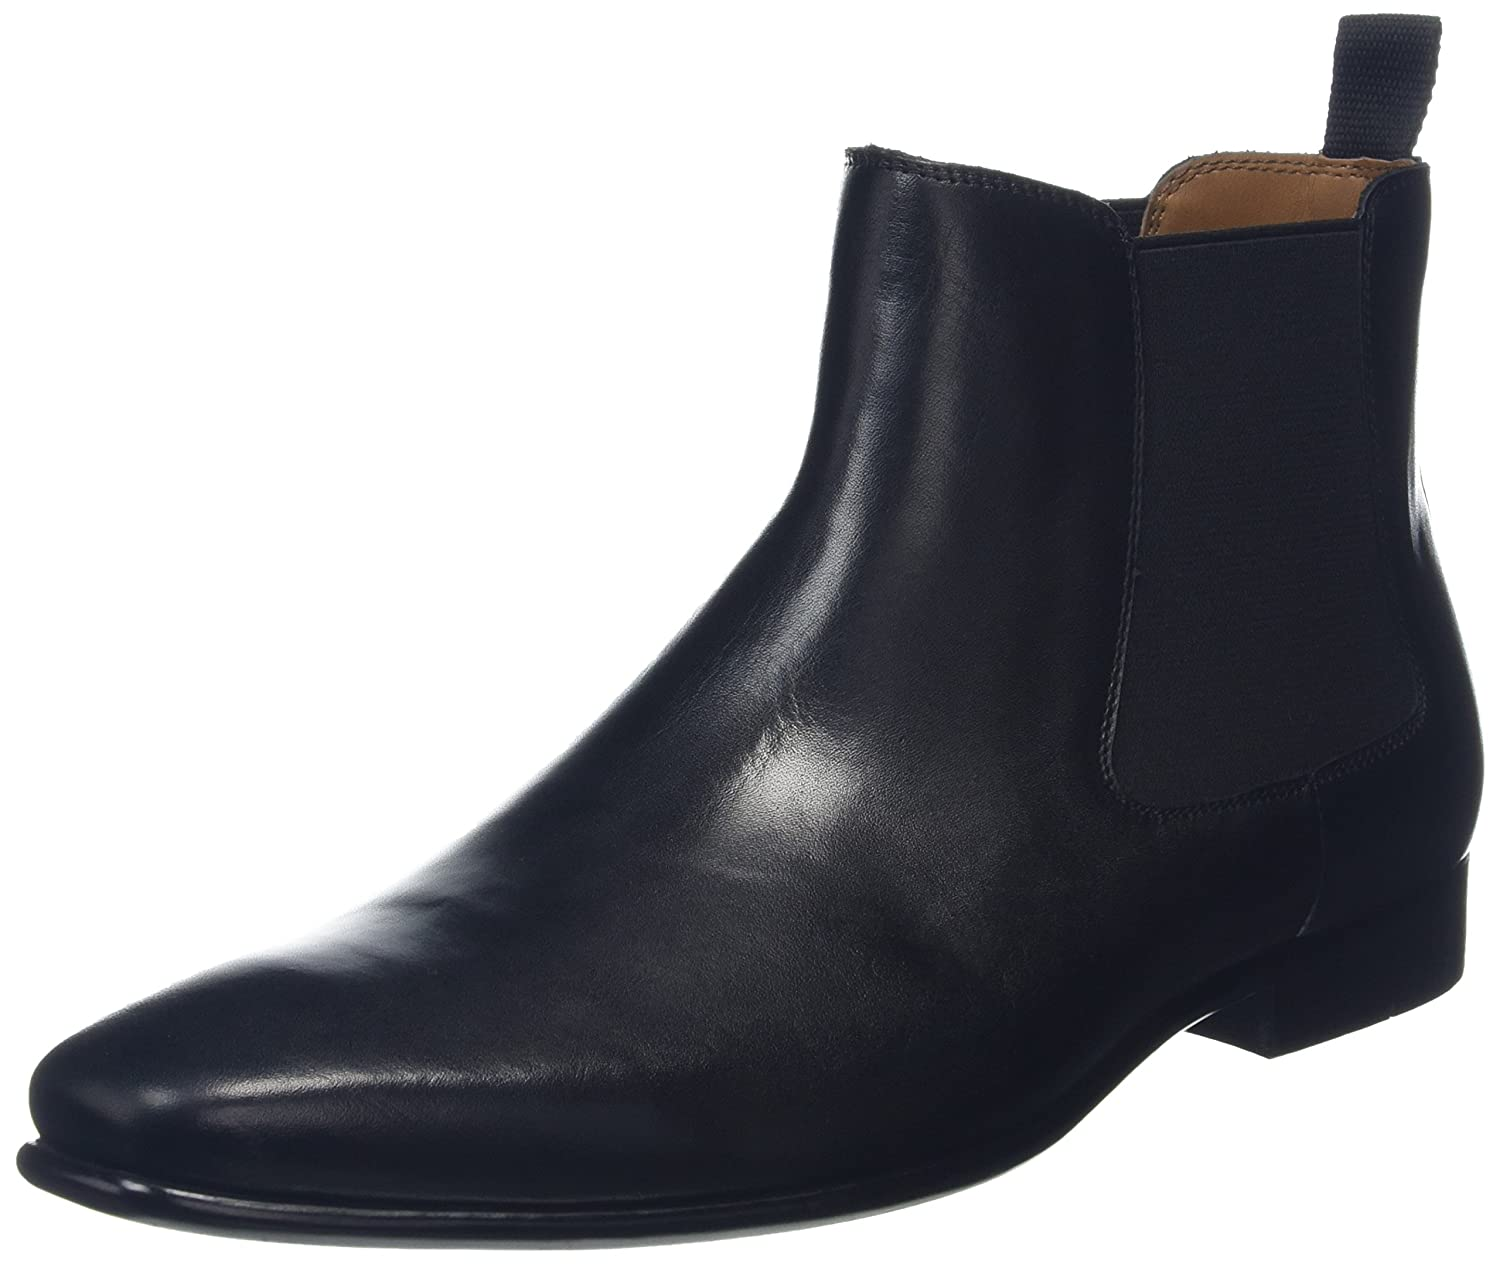 Aldo Gwocia, Botines para Hombre, Negro (Black Leather), 41 EU (7 UK): Amazon.es: Zapatos y complementos